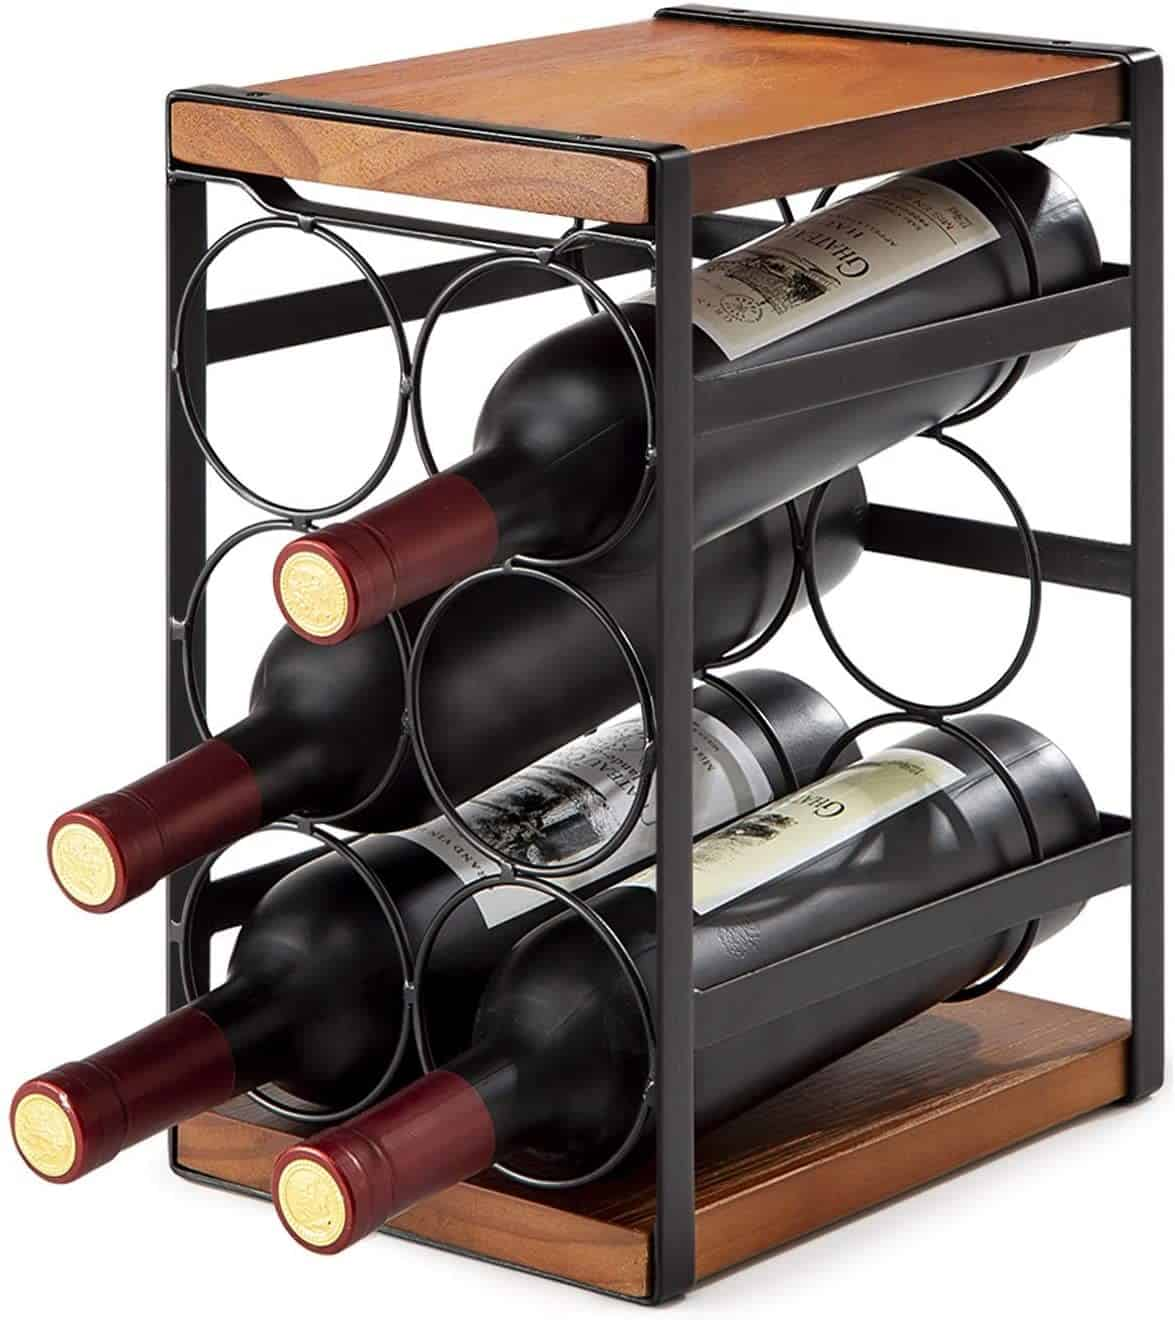 8. Black Metal Wine Rack Wooden Holder Coffee Table Design